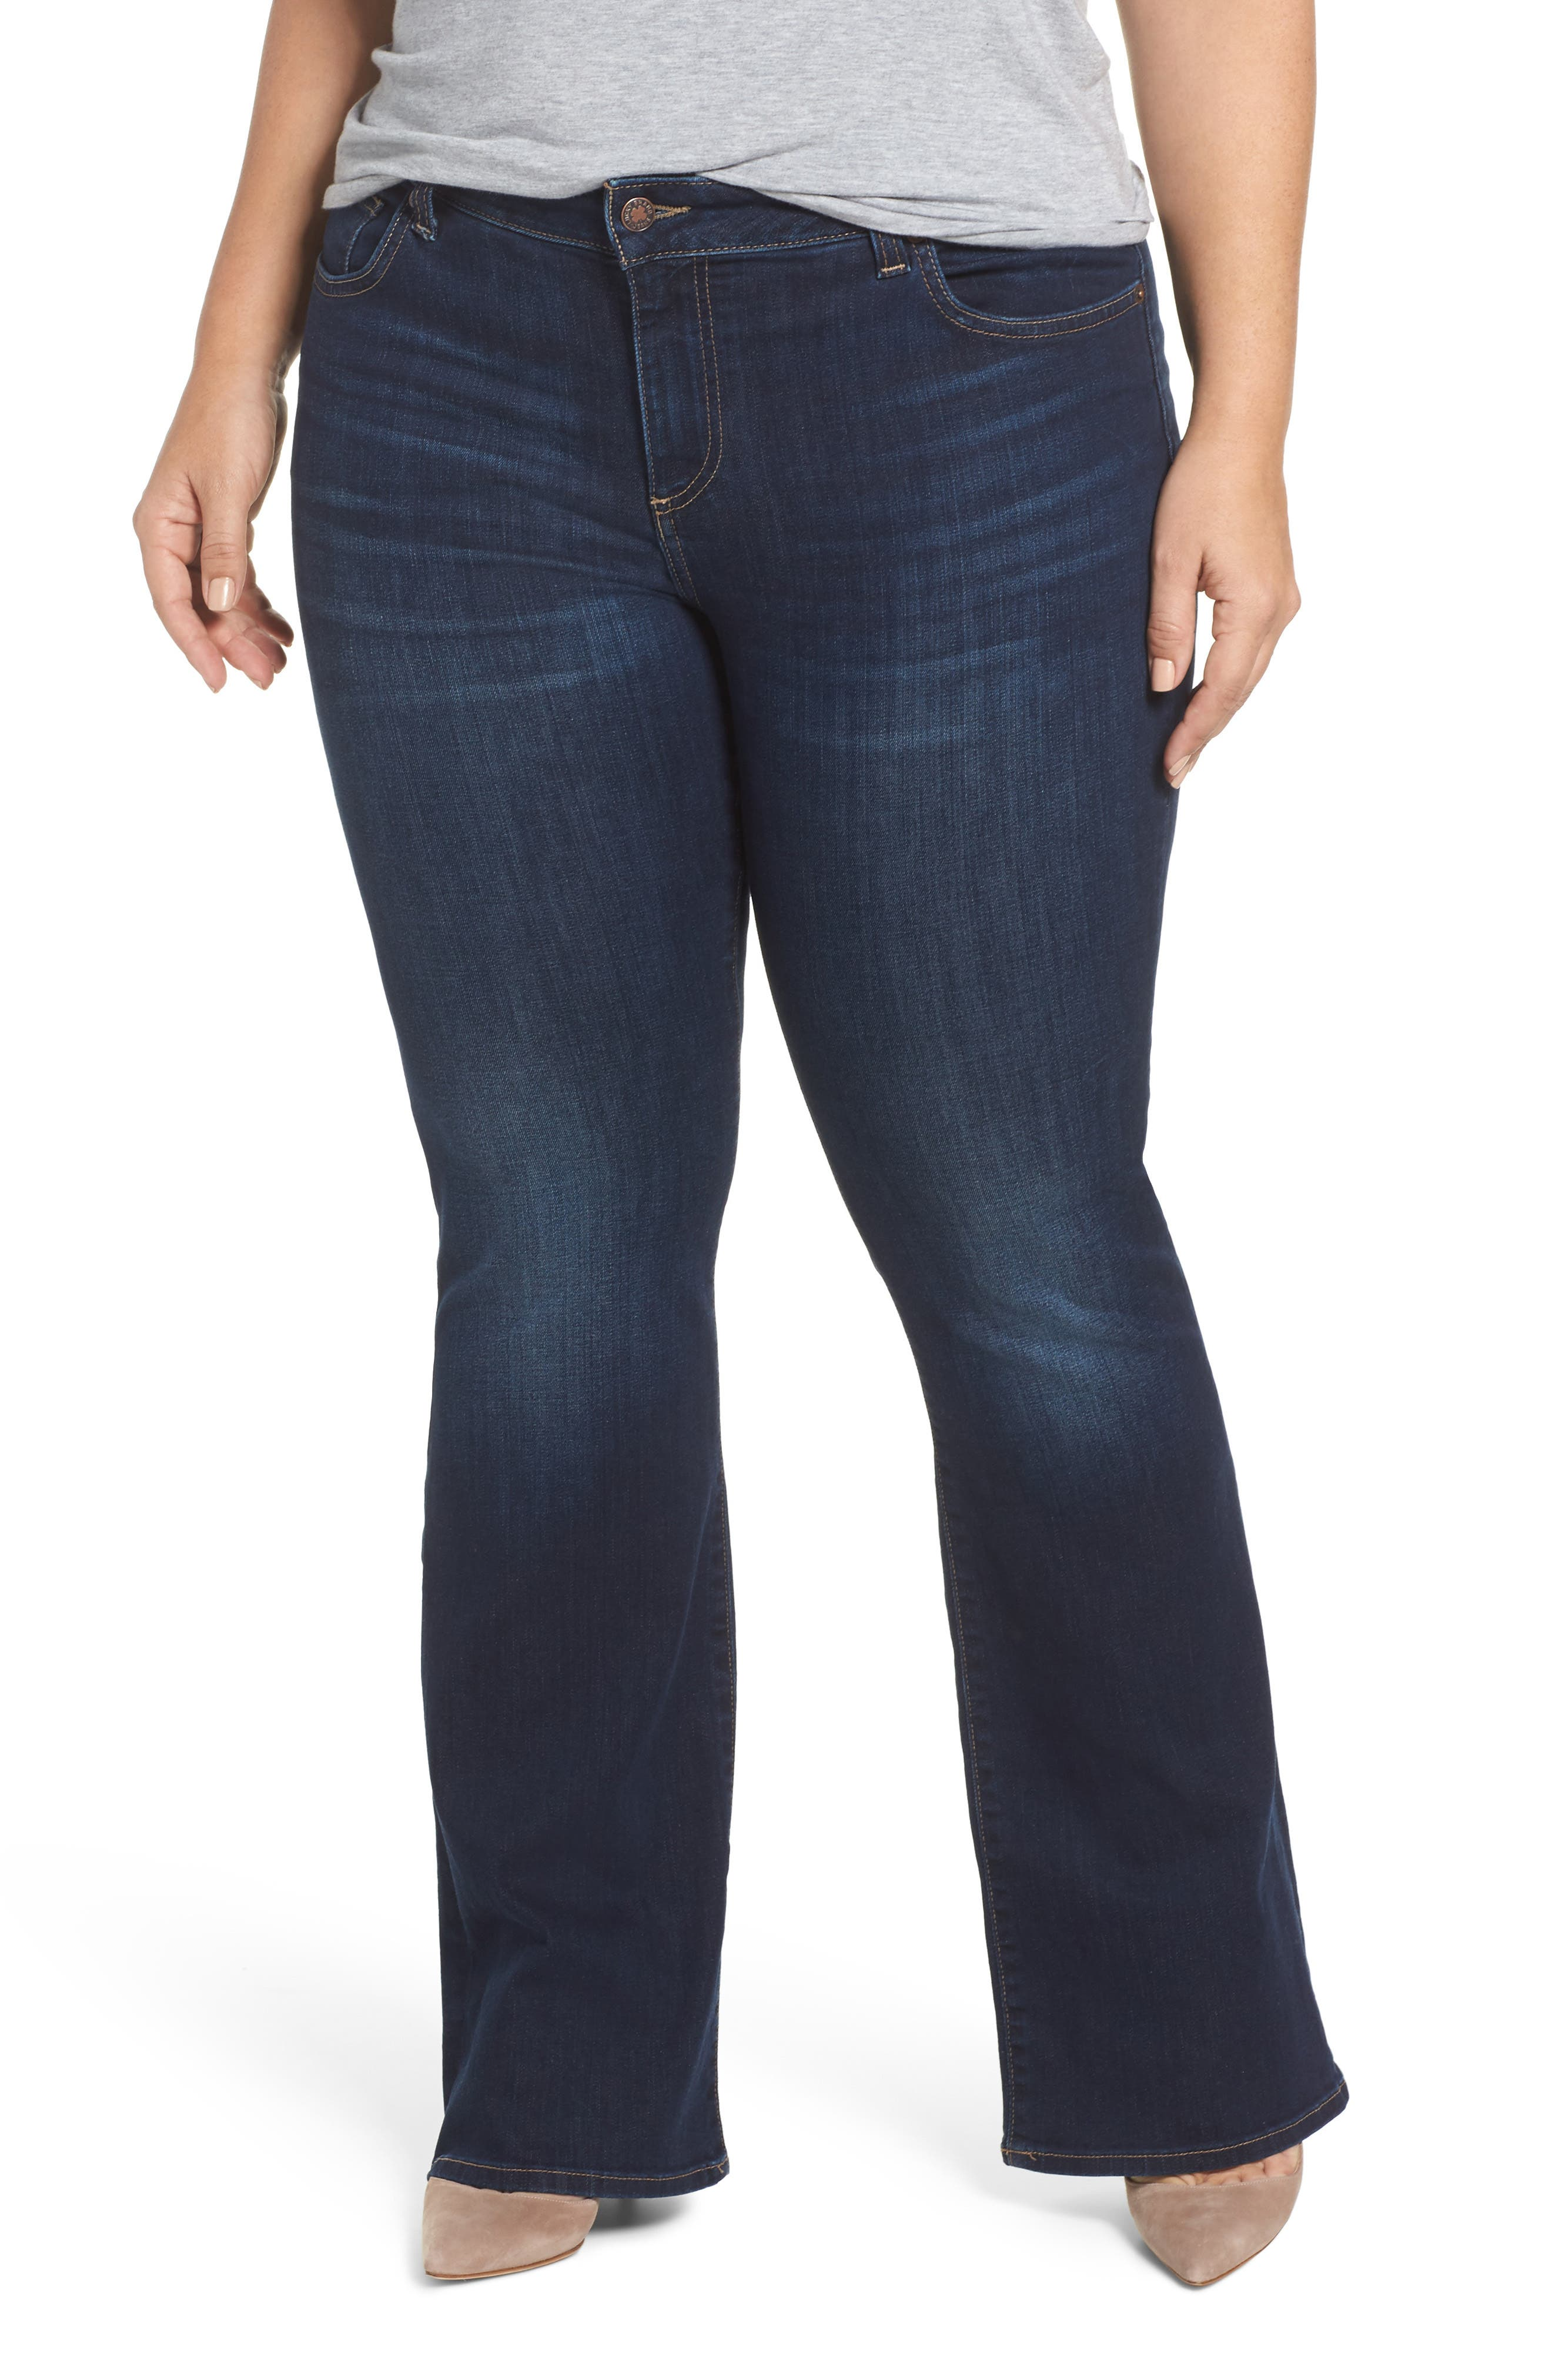 Alternate Image 1 Selected - Lucky Brand Ginger Bootcut Jeans (Twilight Blue) (Plus Size)